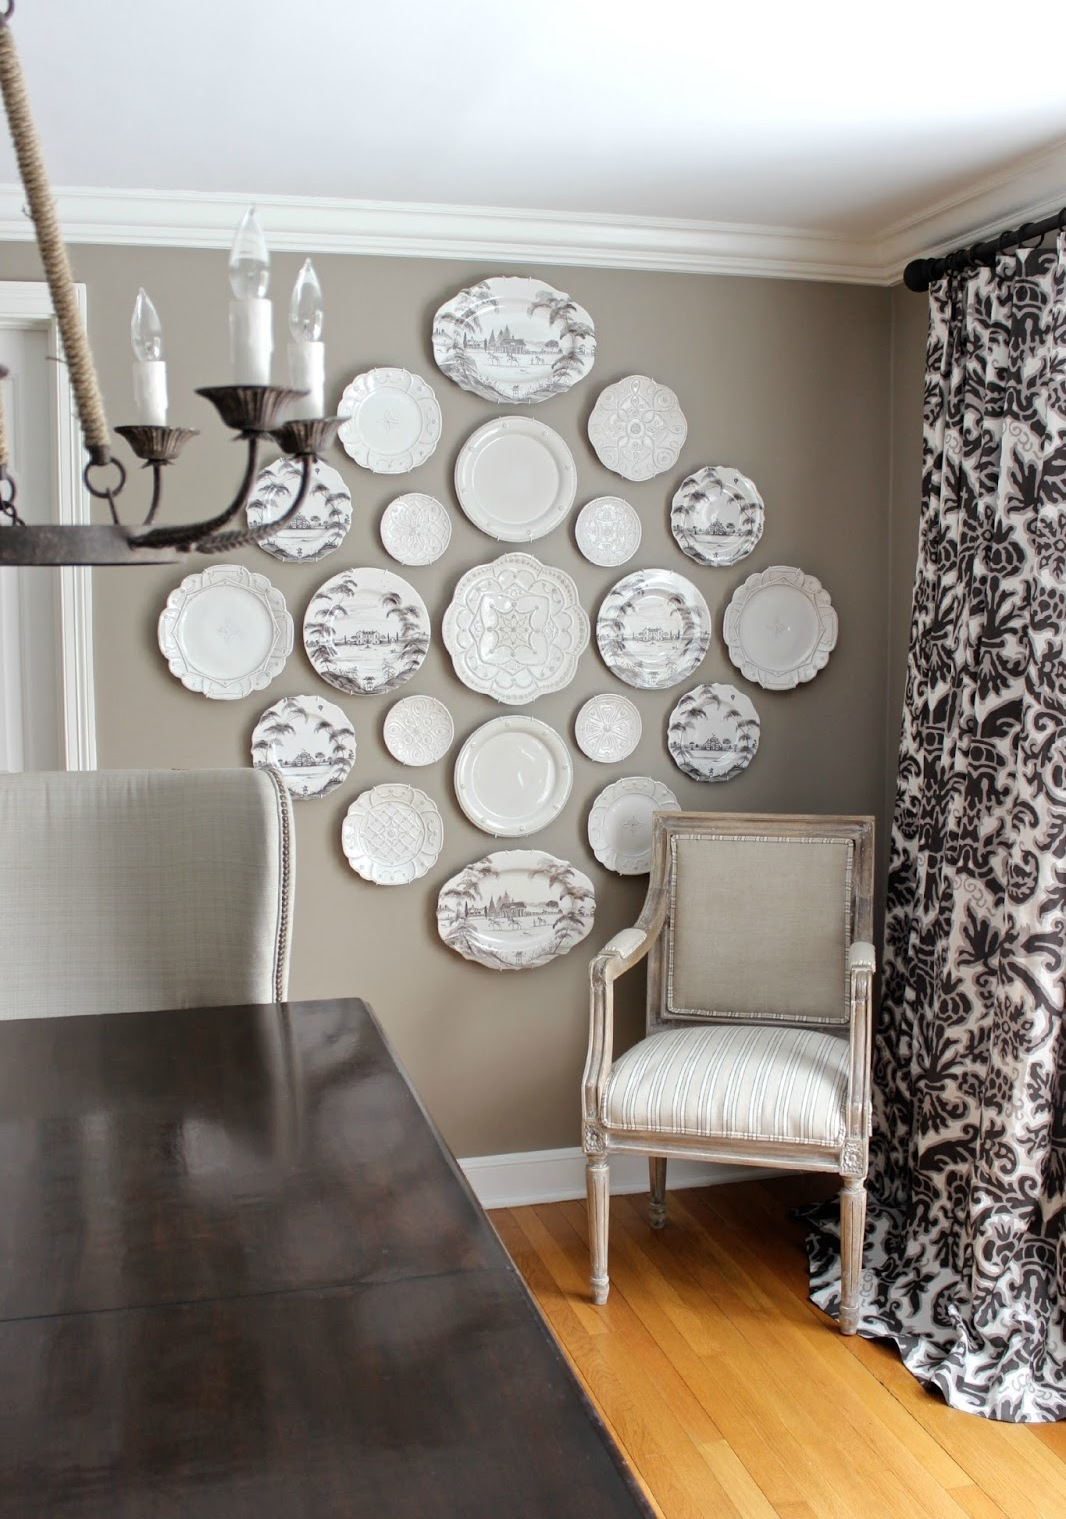 Image of: decorative plates for walls